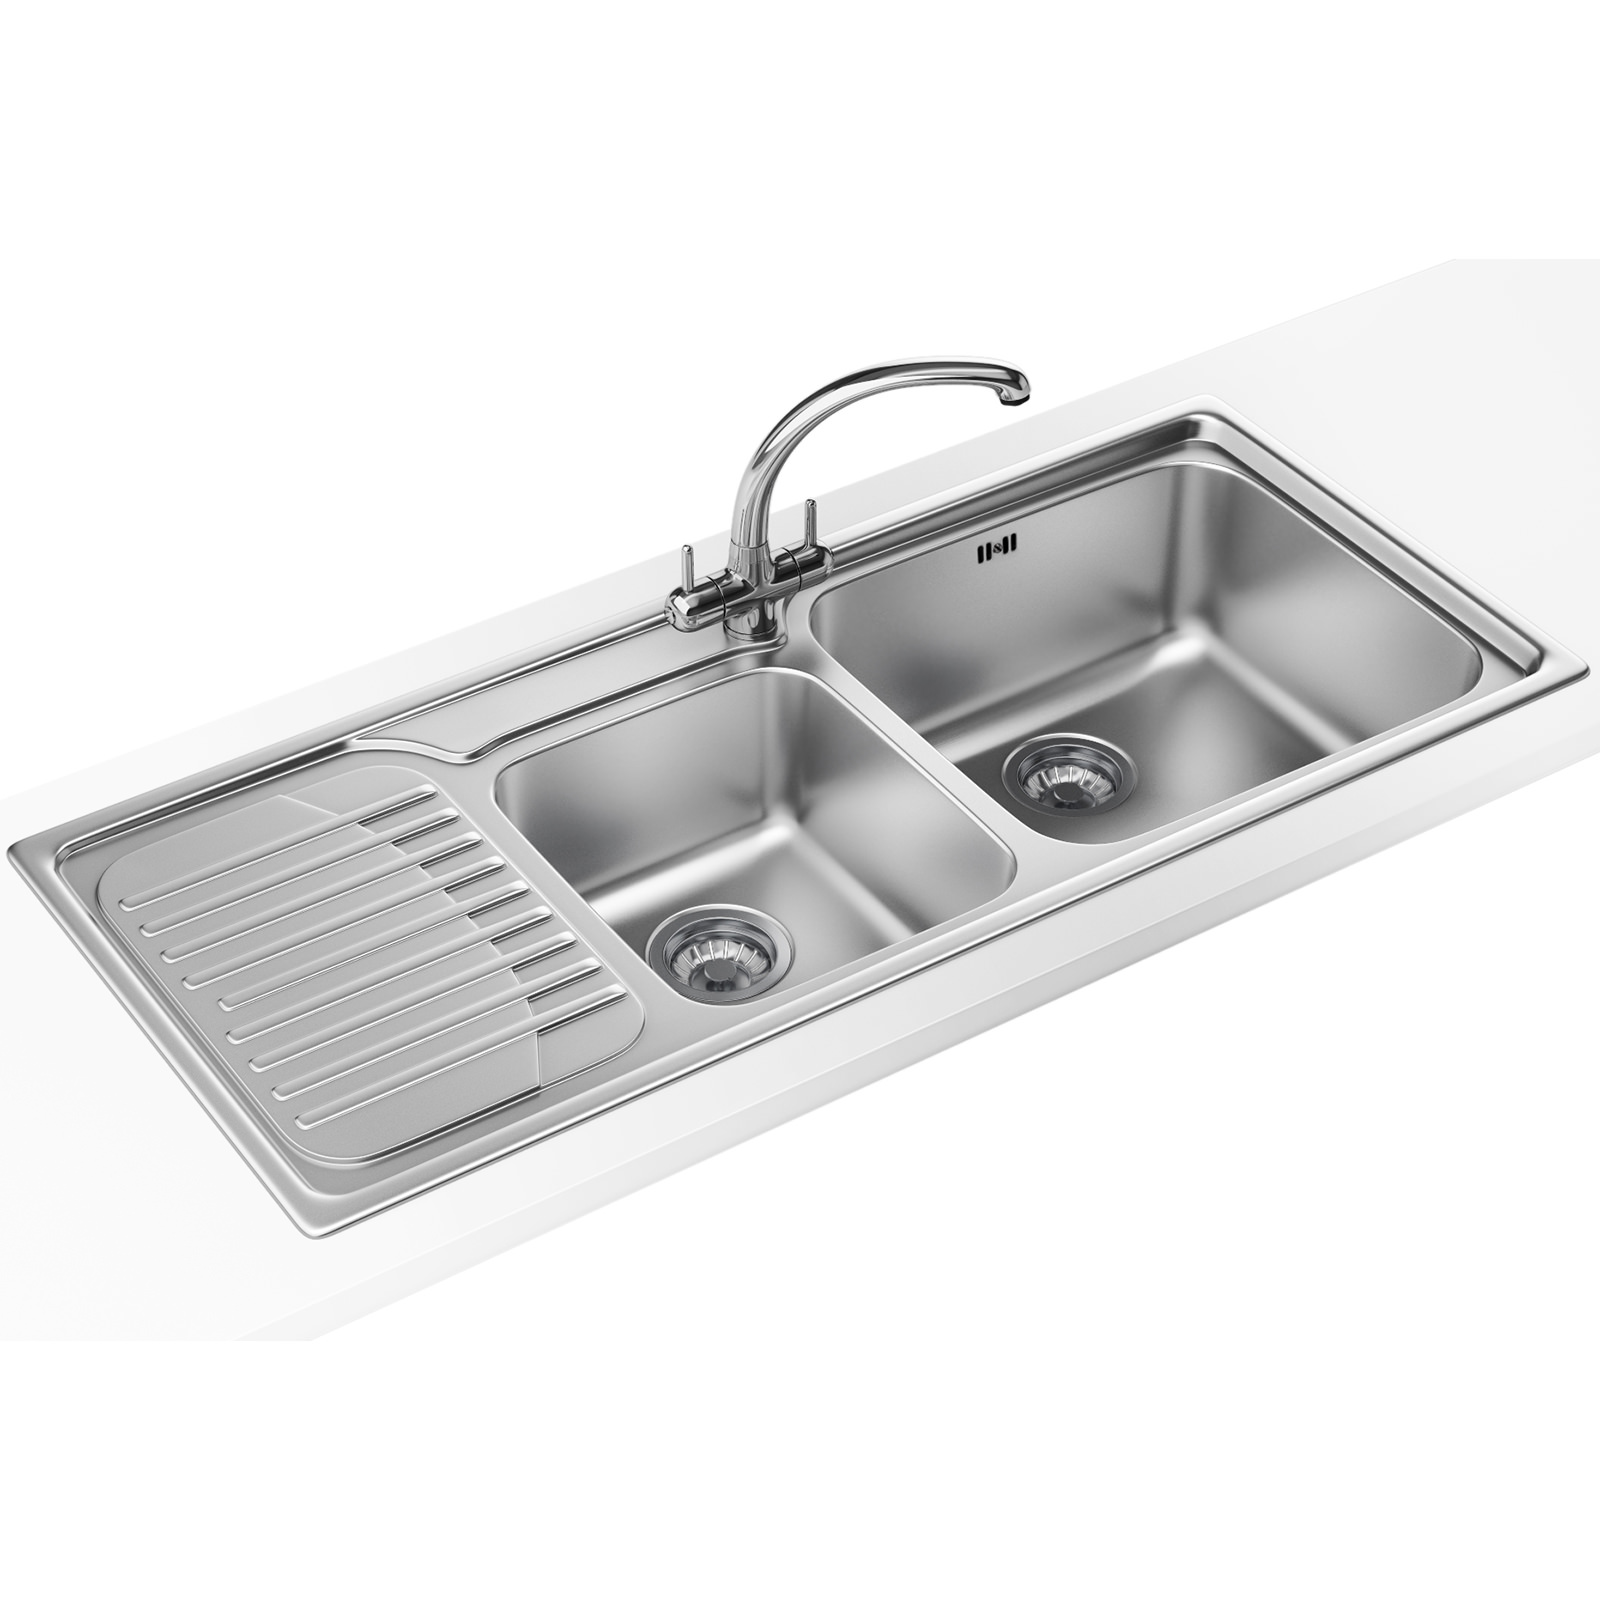 franke galassia designer pack gax 621 stainless steel sink and tap